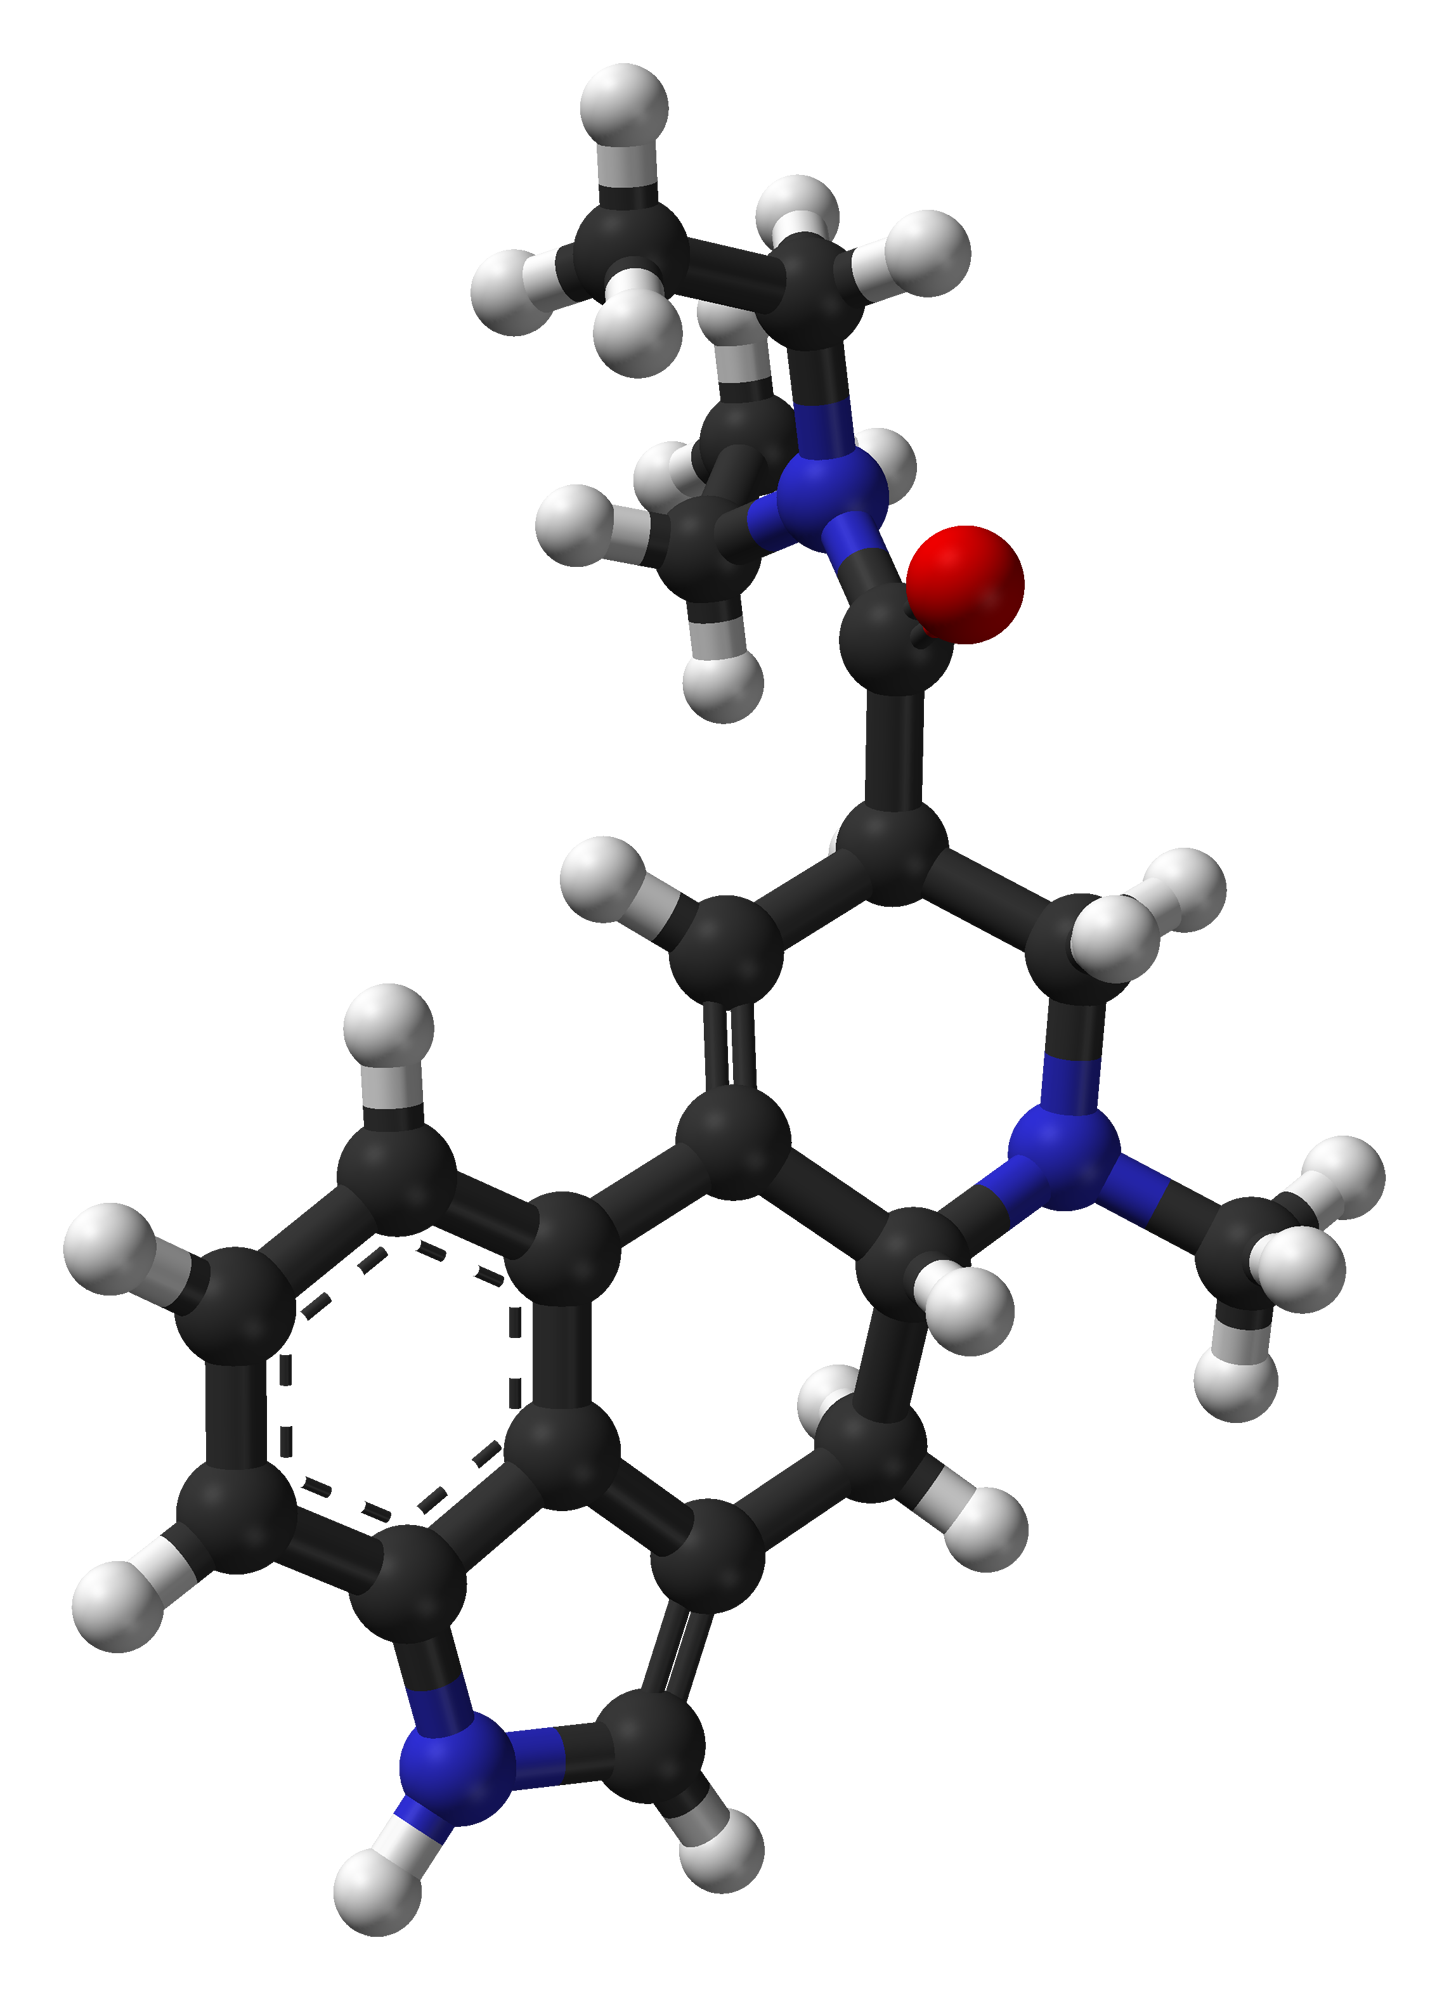 File:LSD-from-xtal-and-Spartan-PM3-3D-balls-web.png - Wikimedia Commons